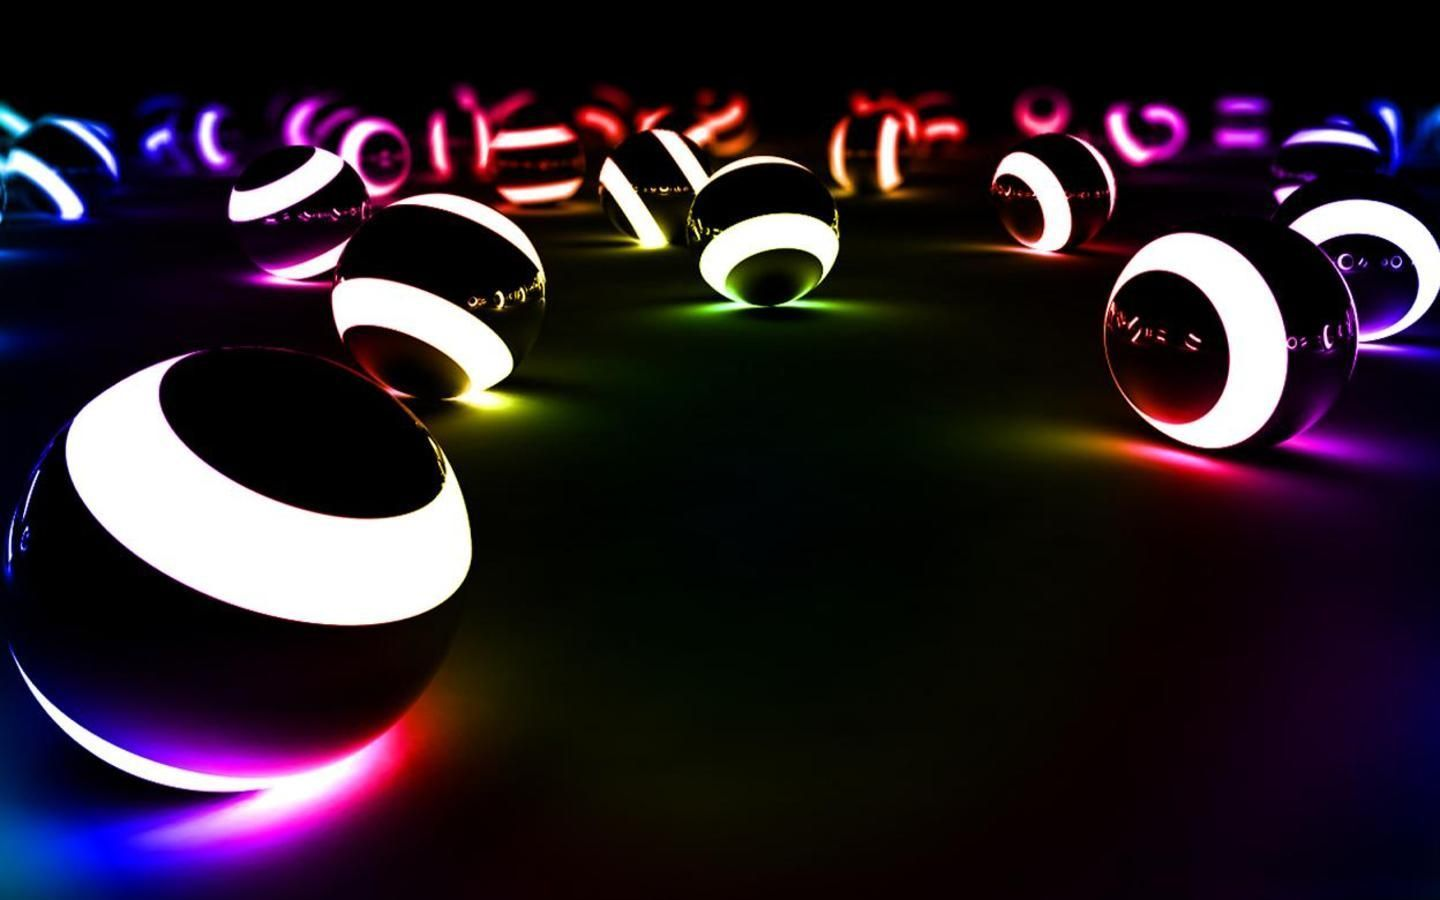 Awesome neon backgrounds   SF Wallpaper 1440x900